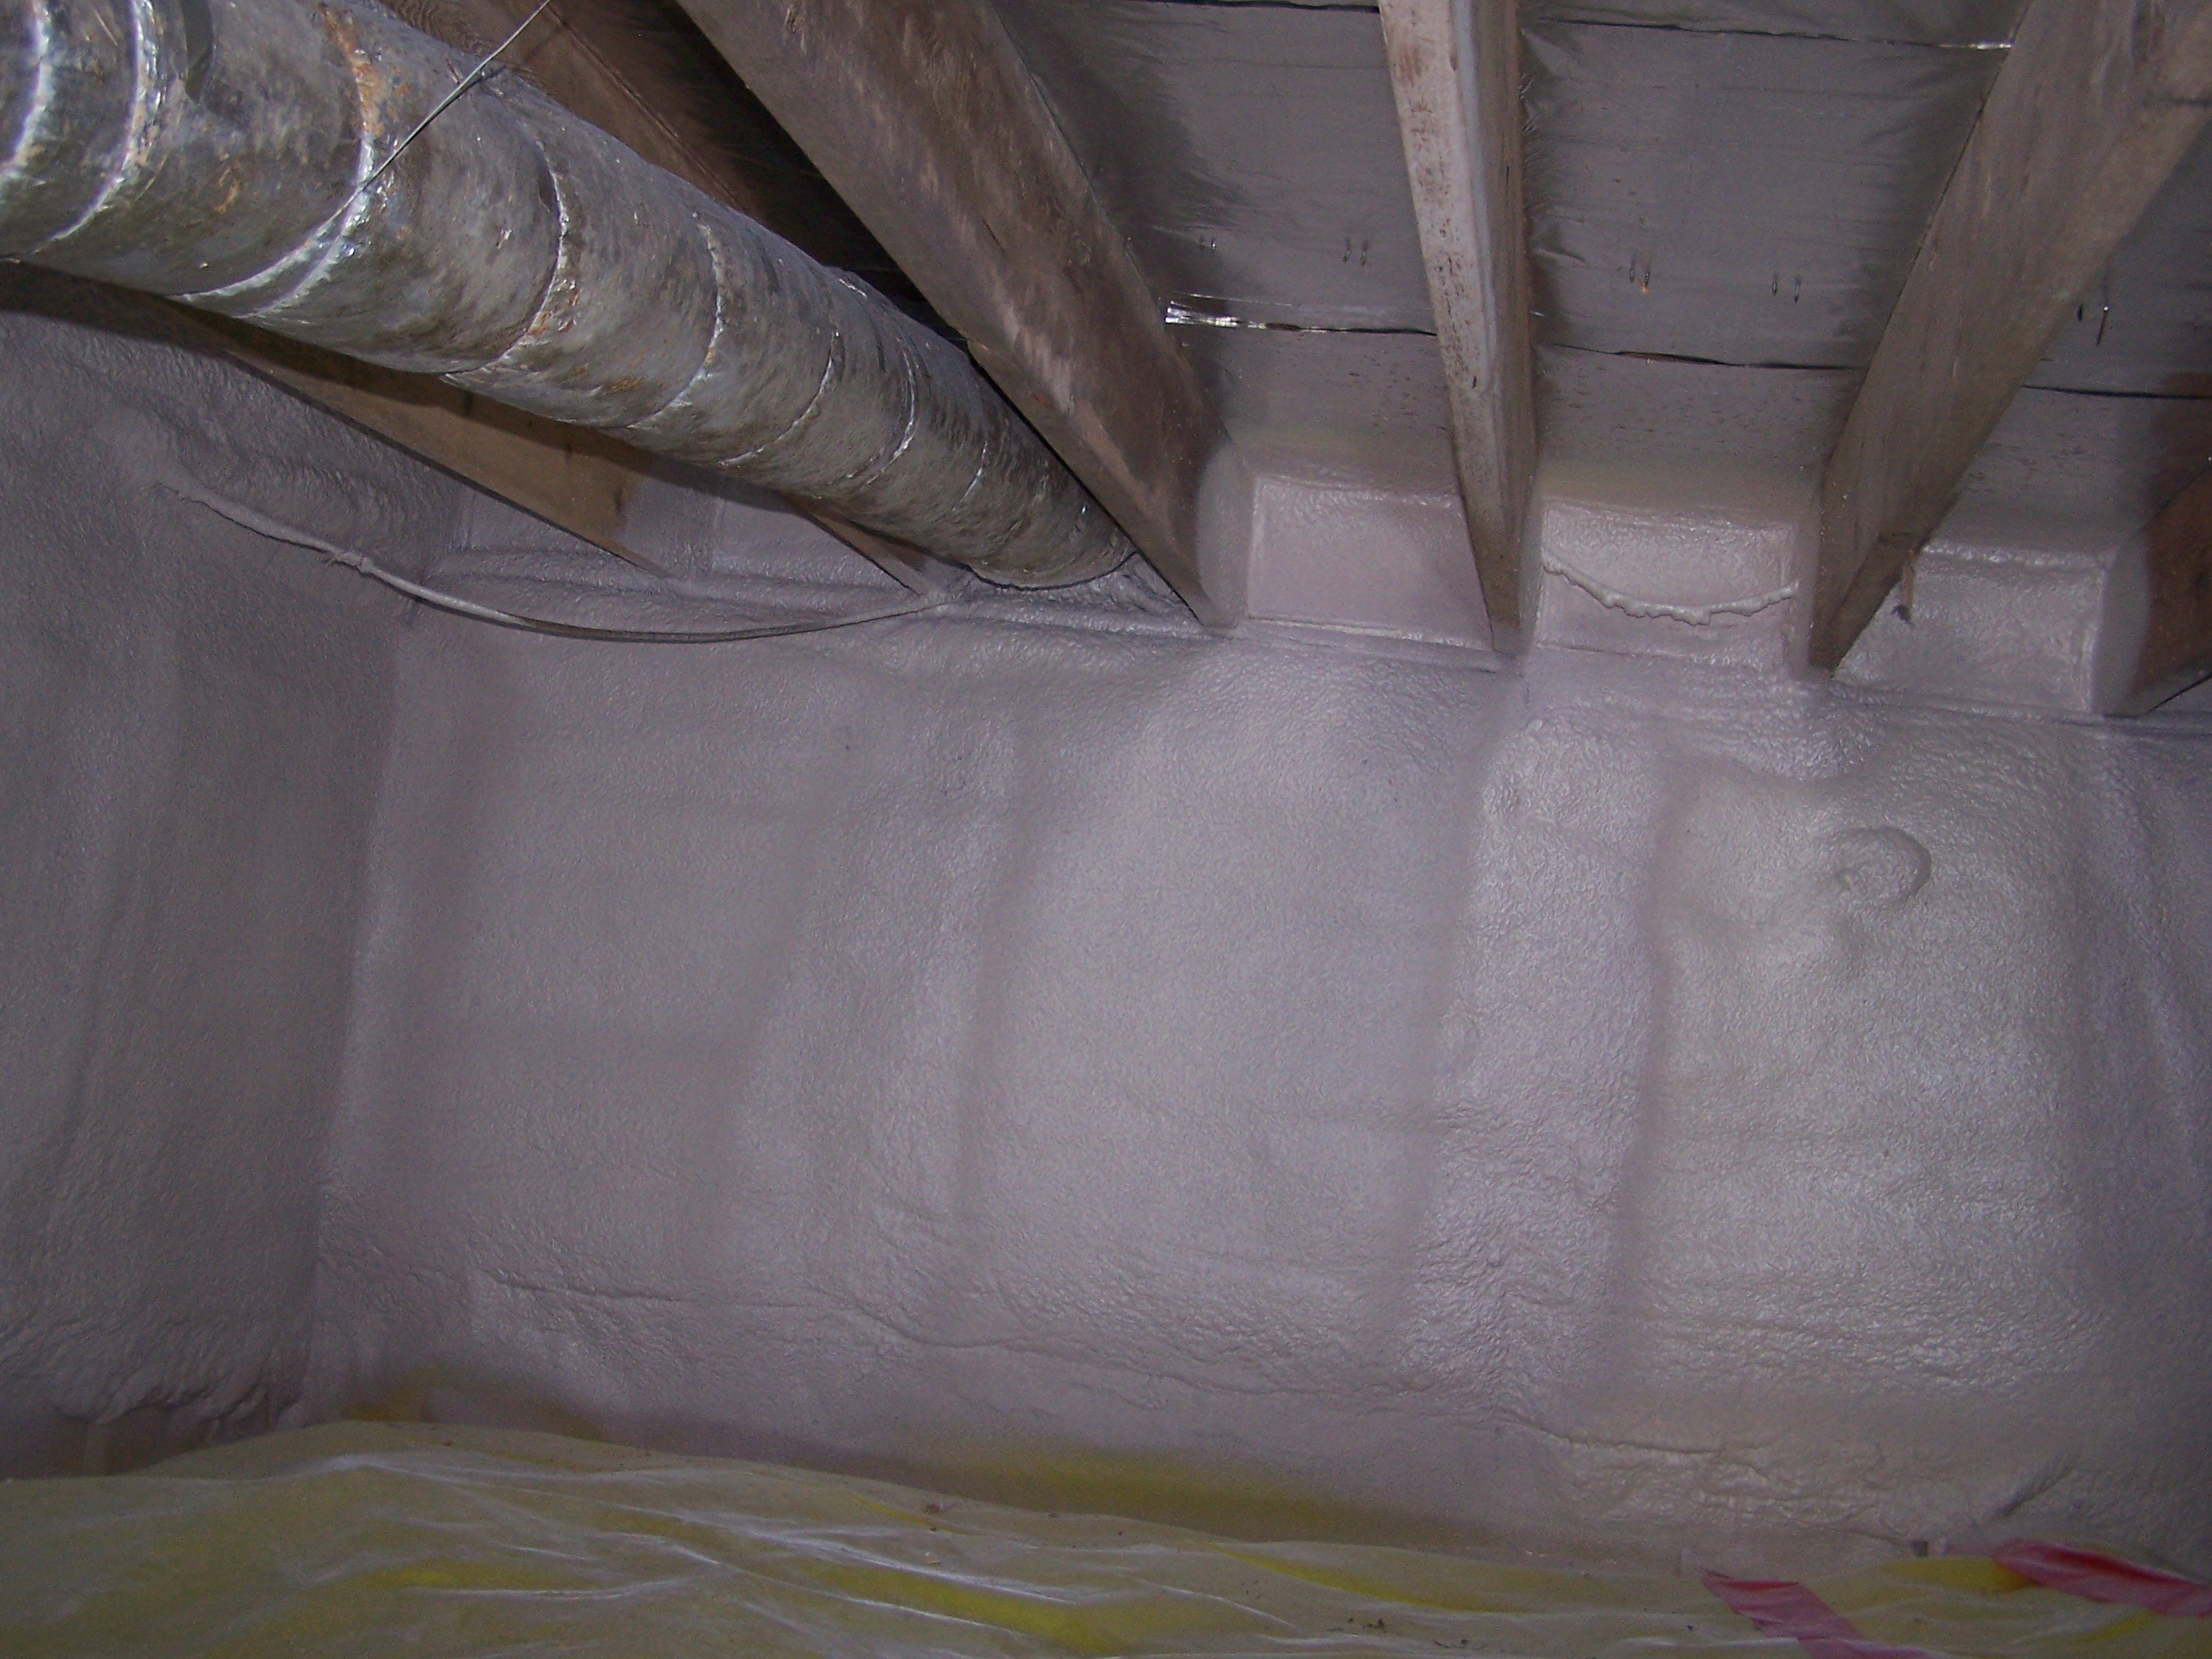 The crawlspace foundation walls are insulated with closed cell spray foam insulation.